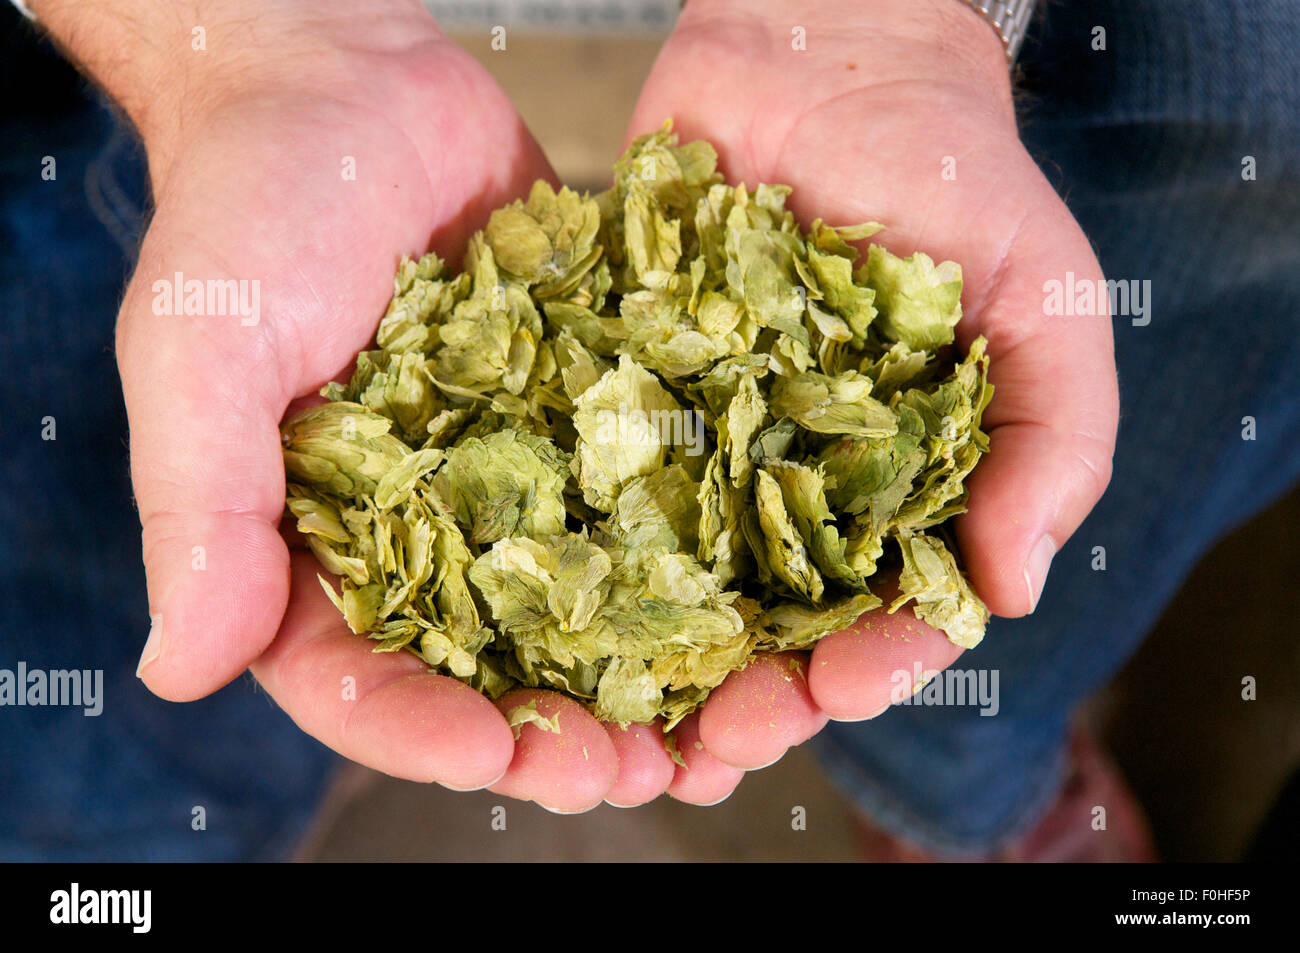 Holding hops for brewing, UK - Stock Image